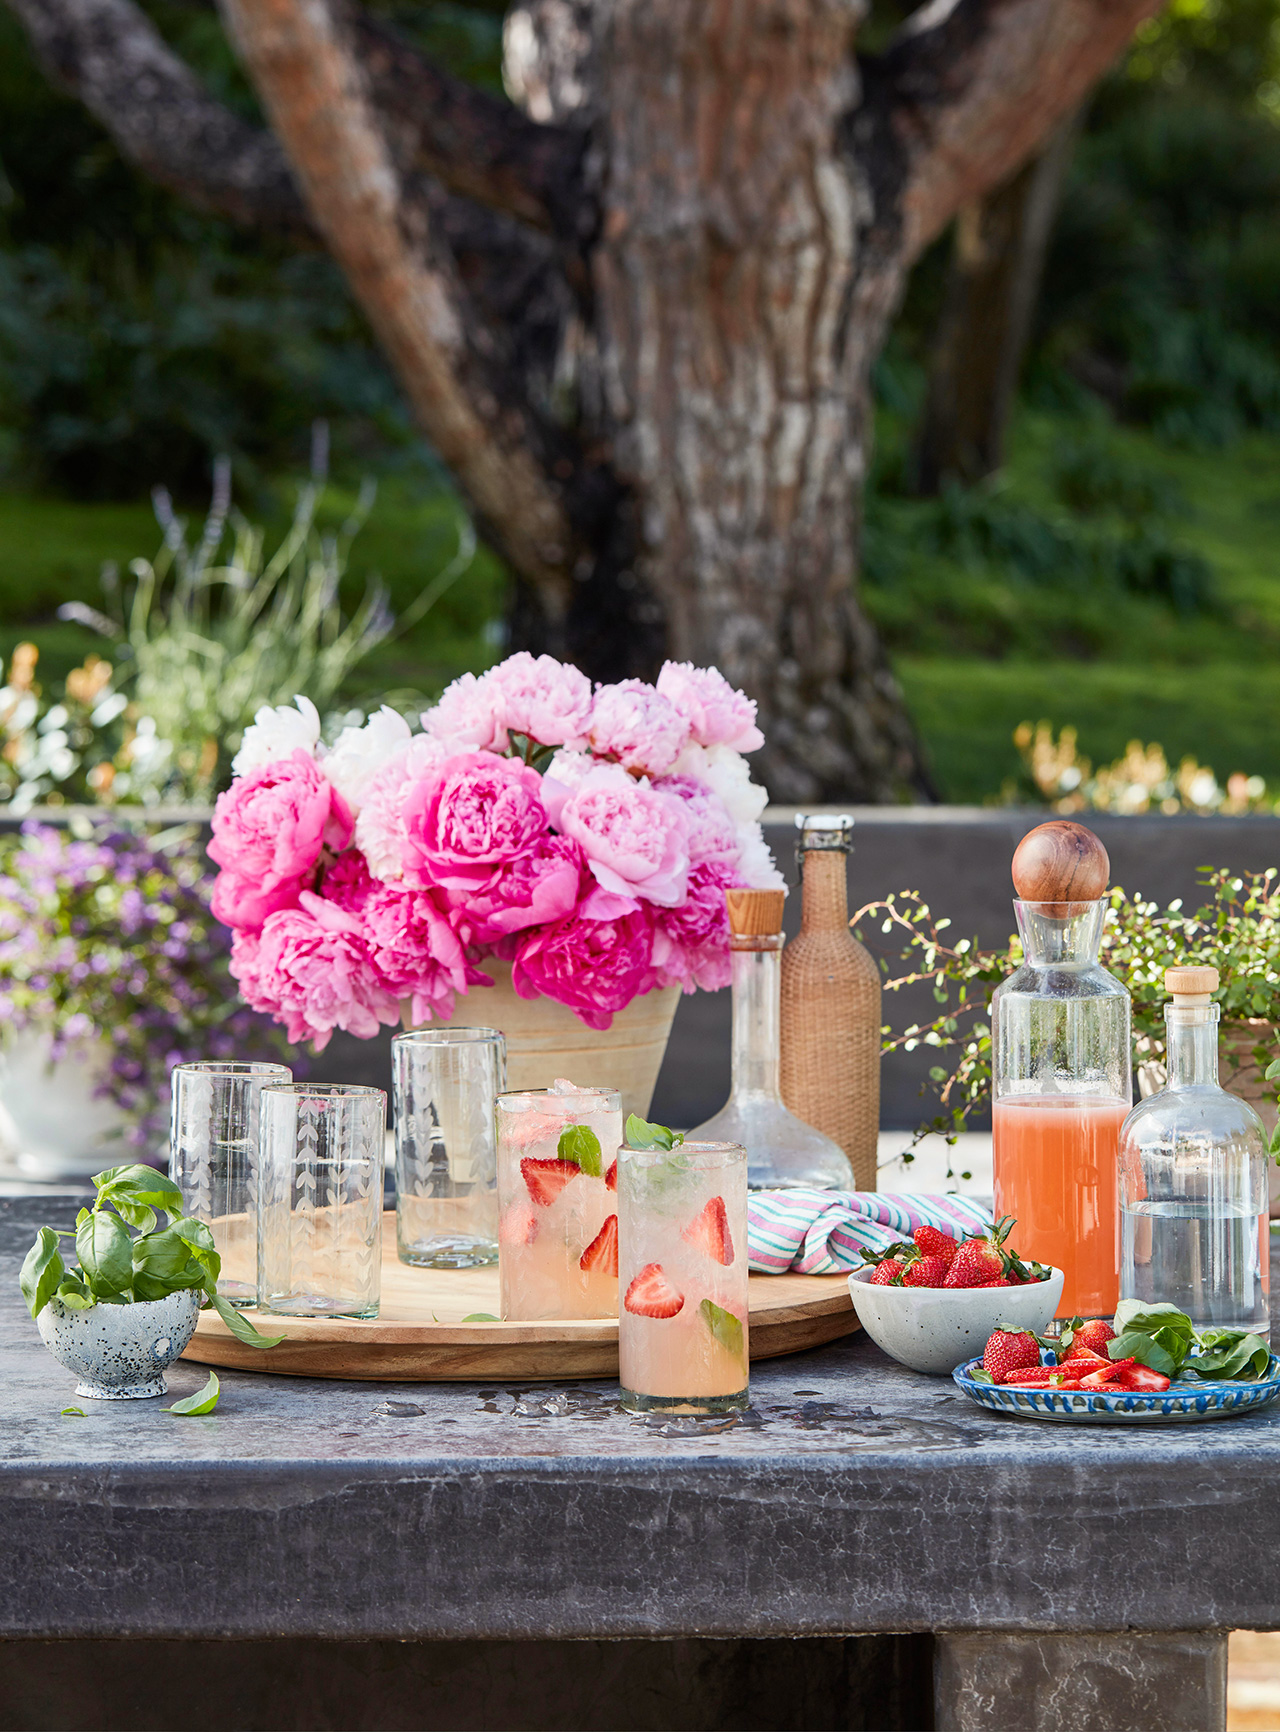 table setting with peonies and strawberry beverages